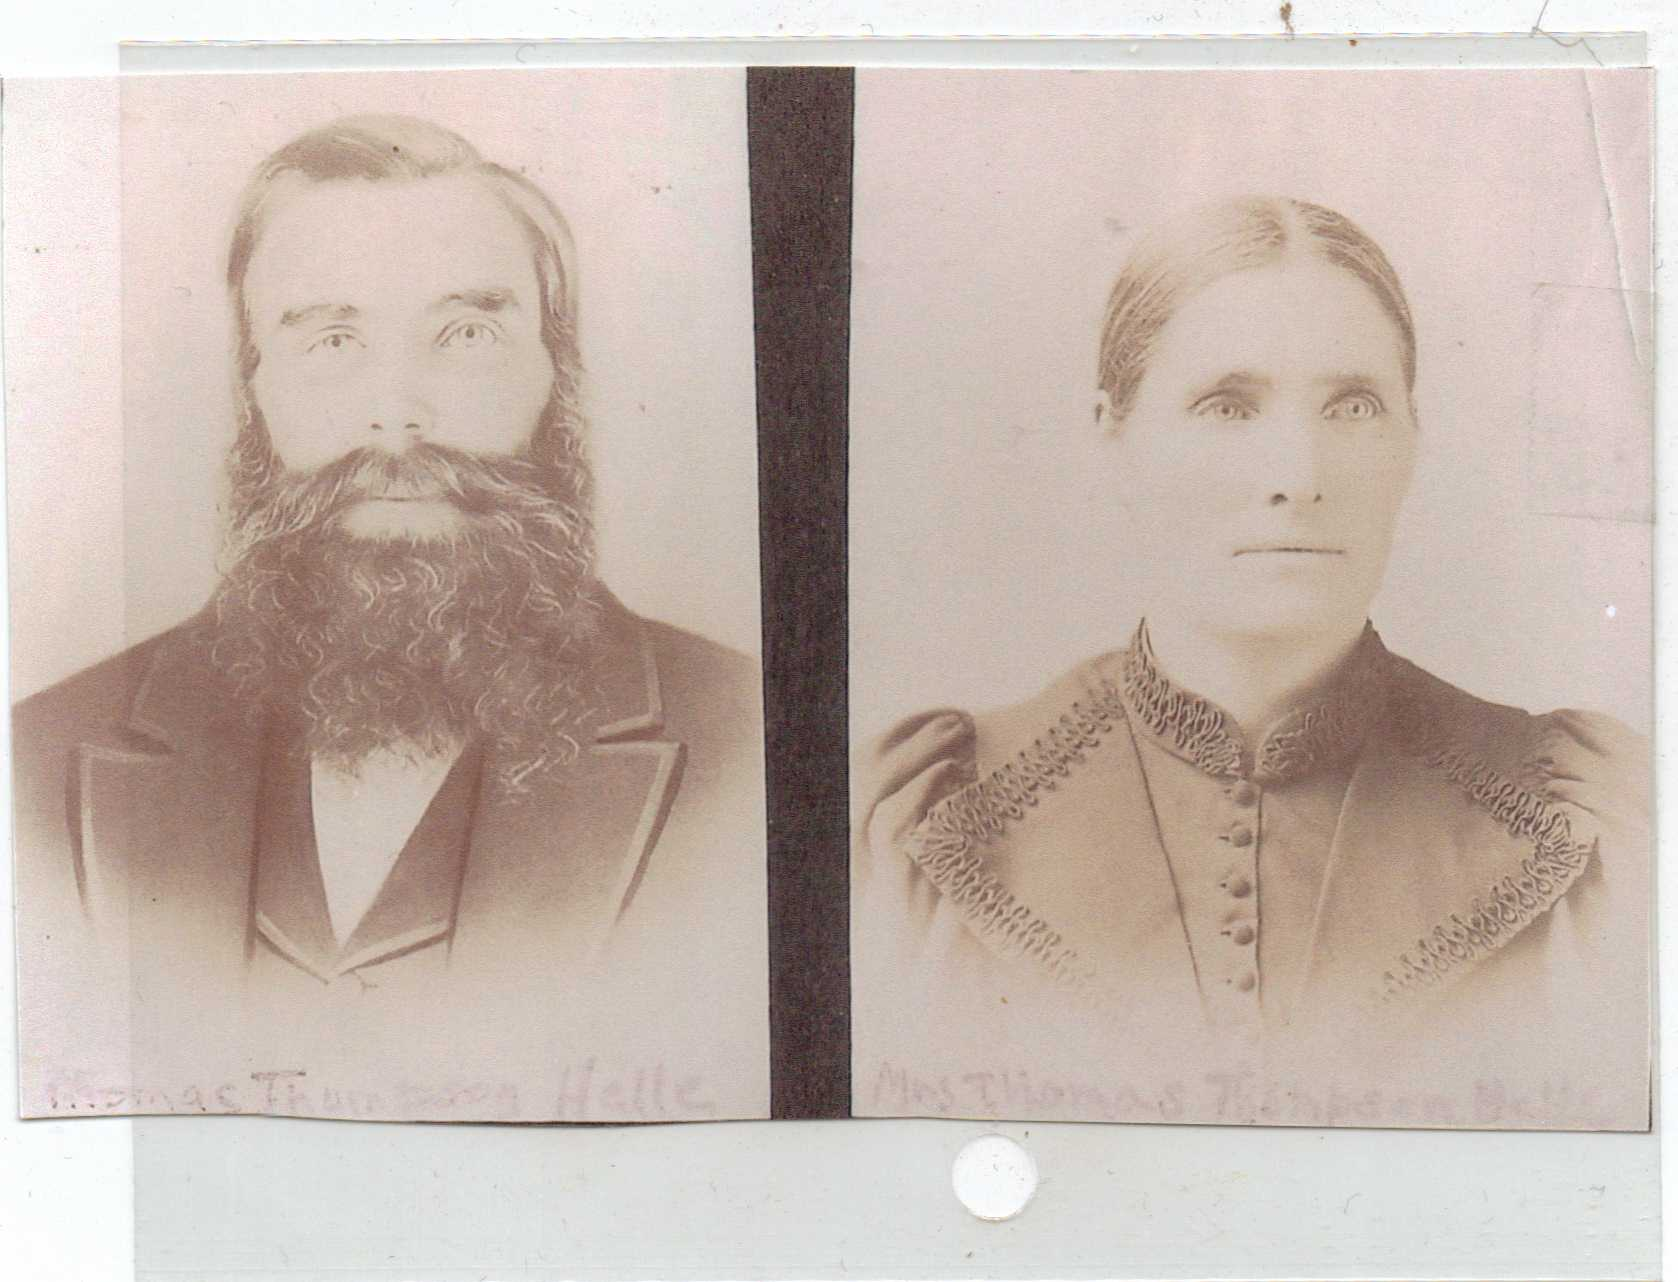 Thomas Olson Helle and Kari Evensen Helle were the first inhabitants of the Helle-Thompson Cabin.